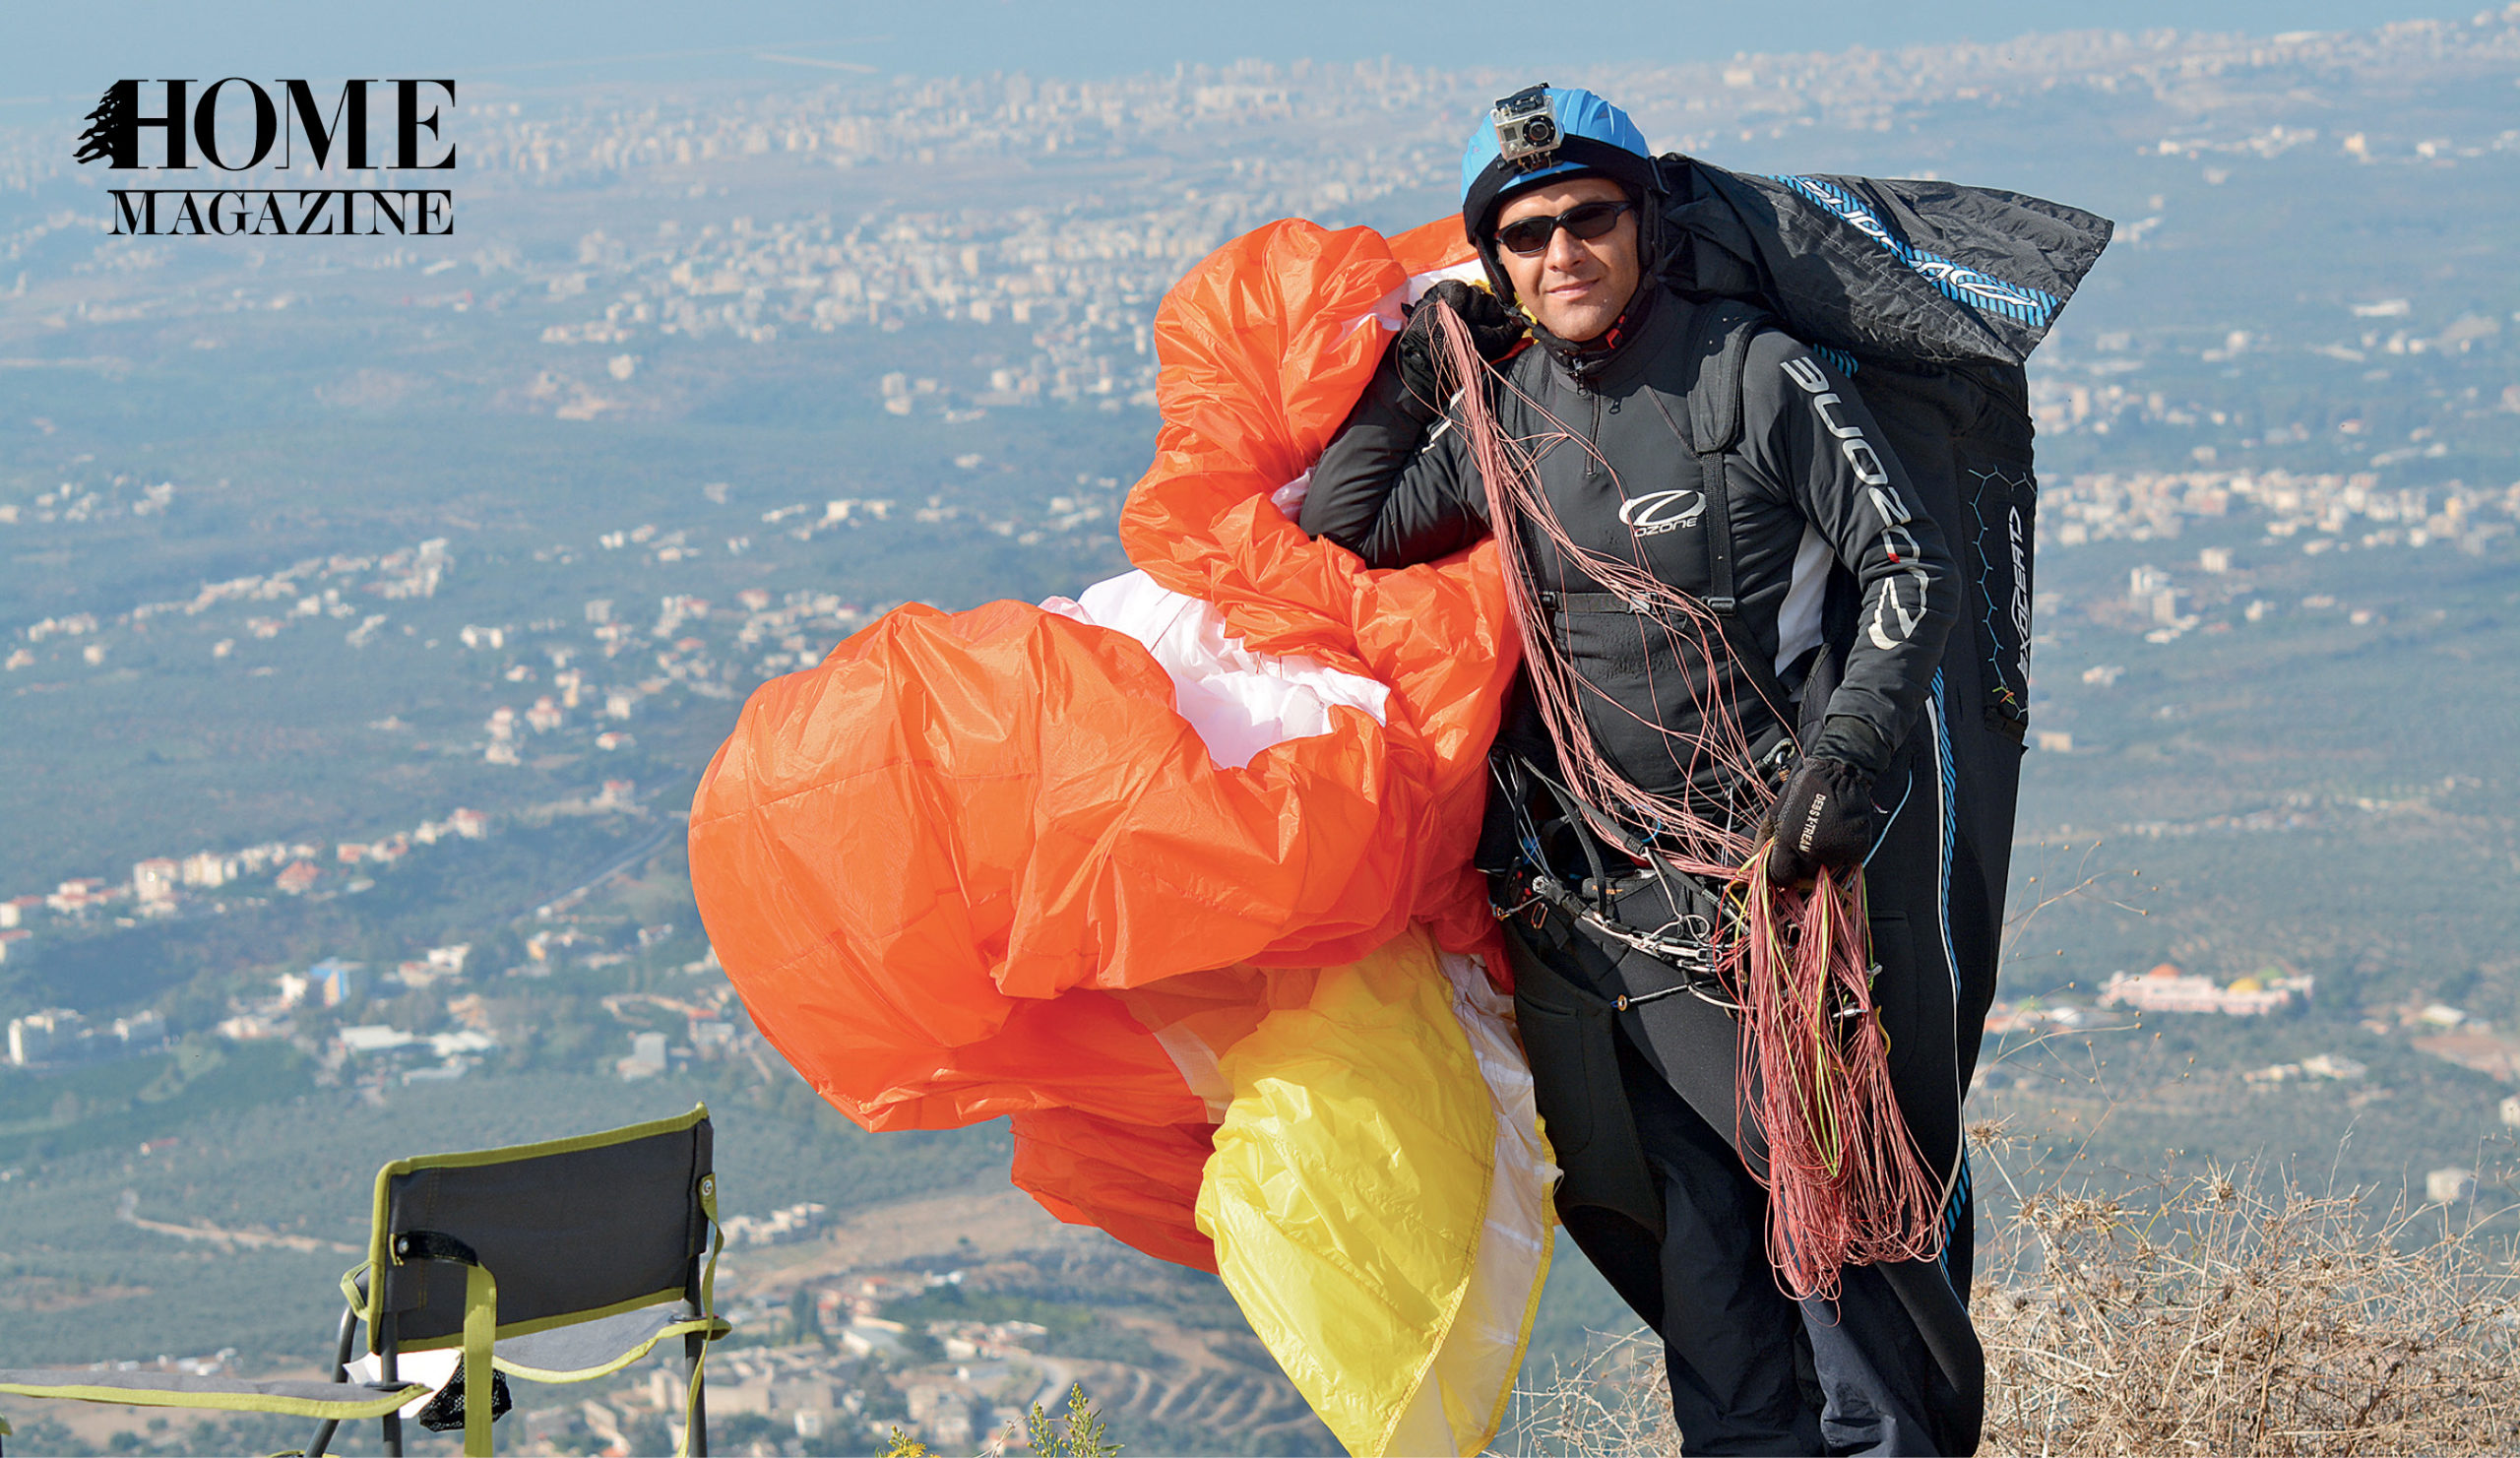 A man in black costume, helmet and sunglasses holding a foiled red and yellow parachute